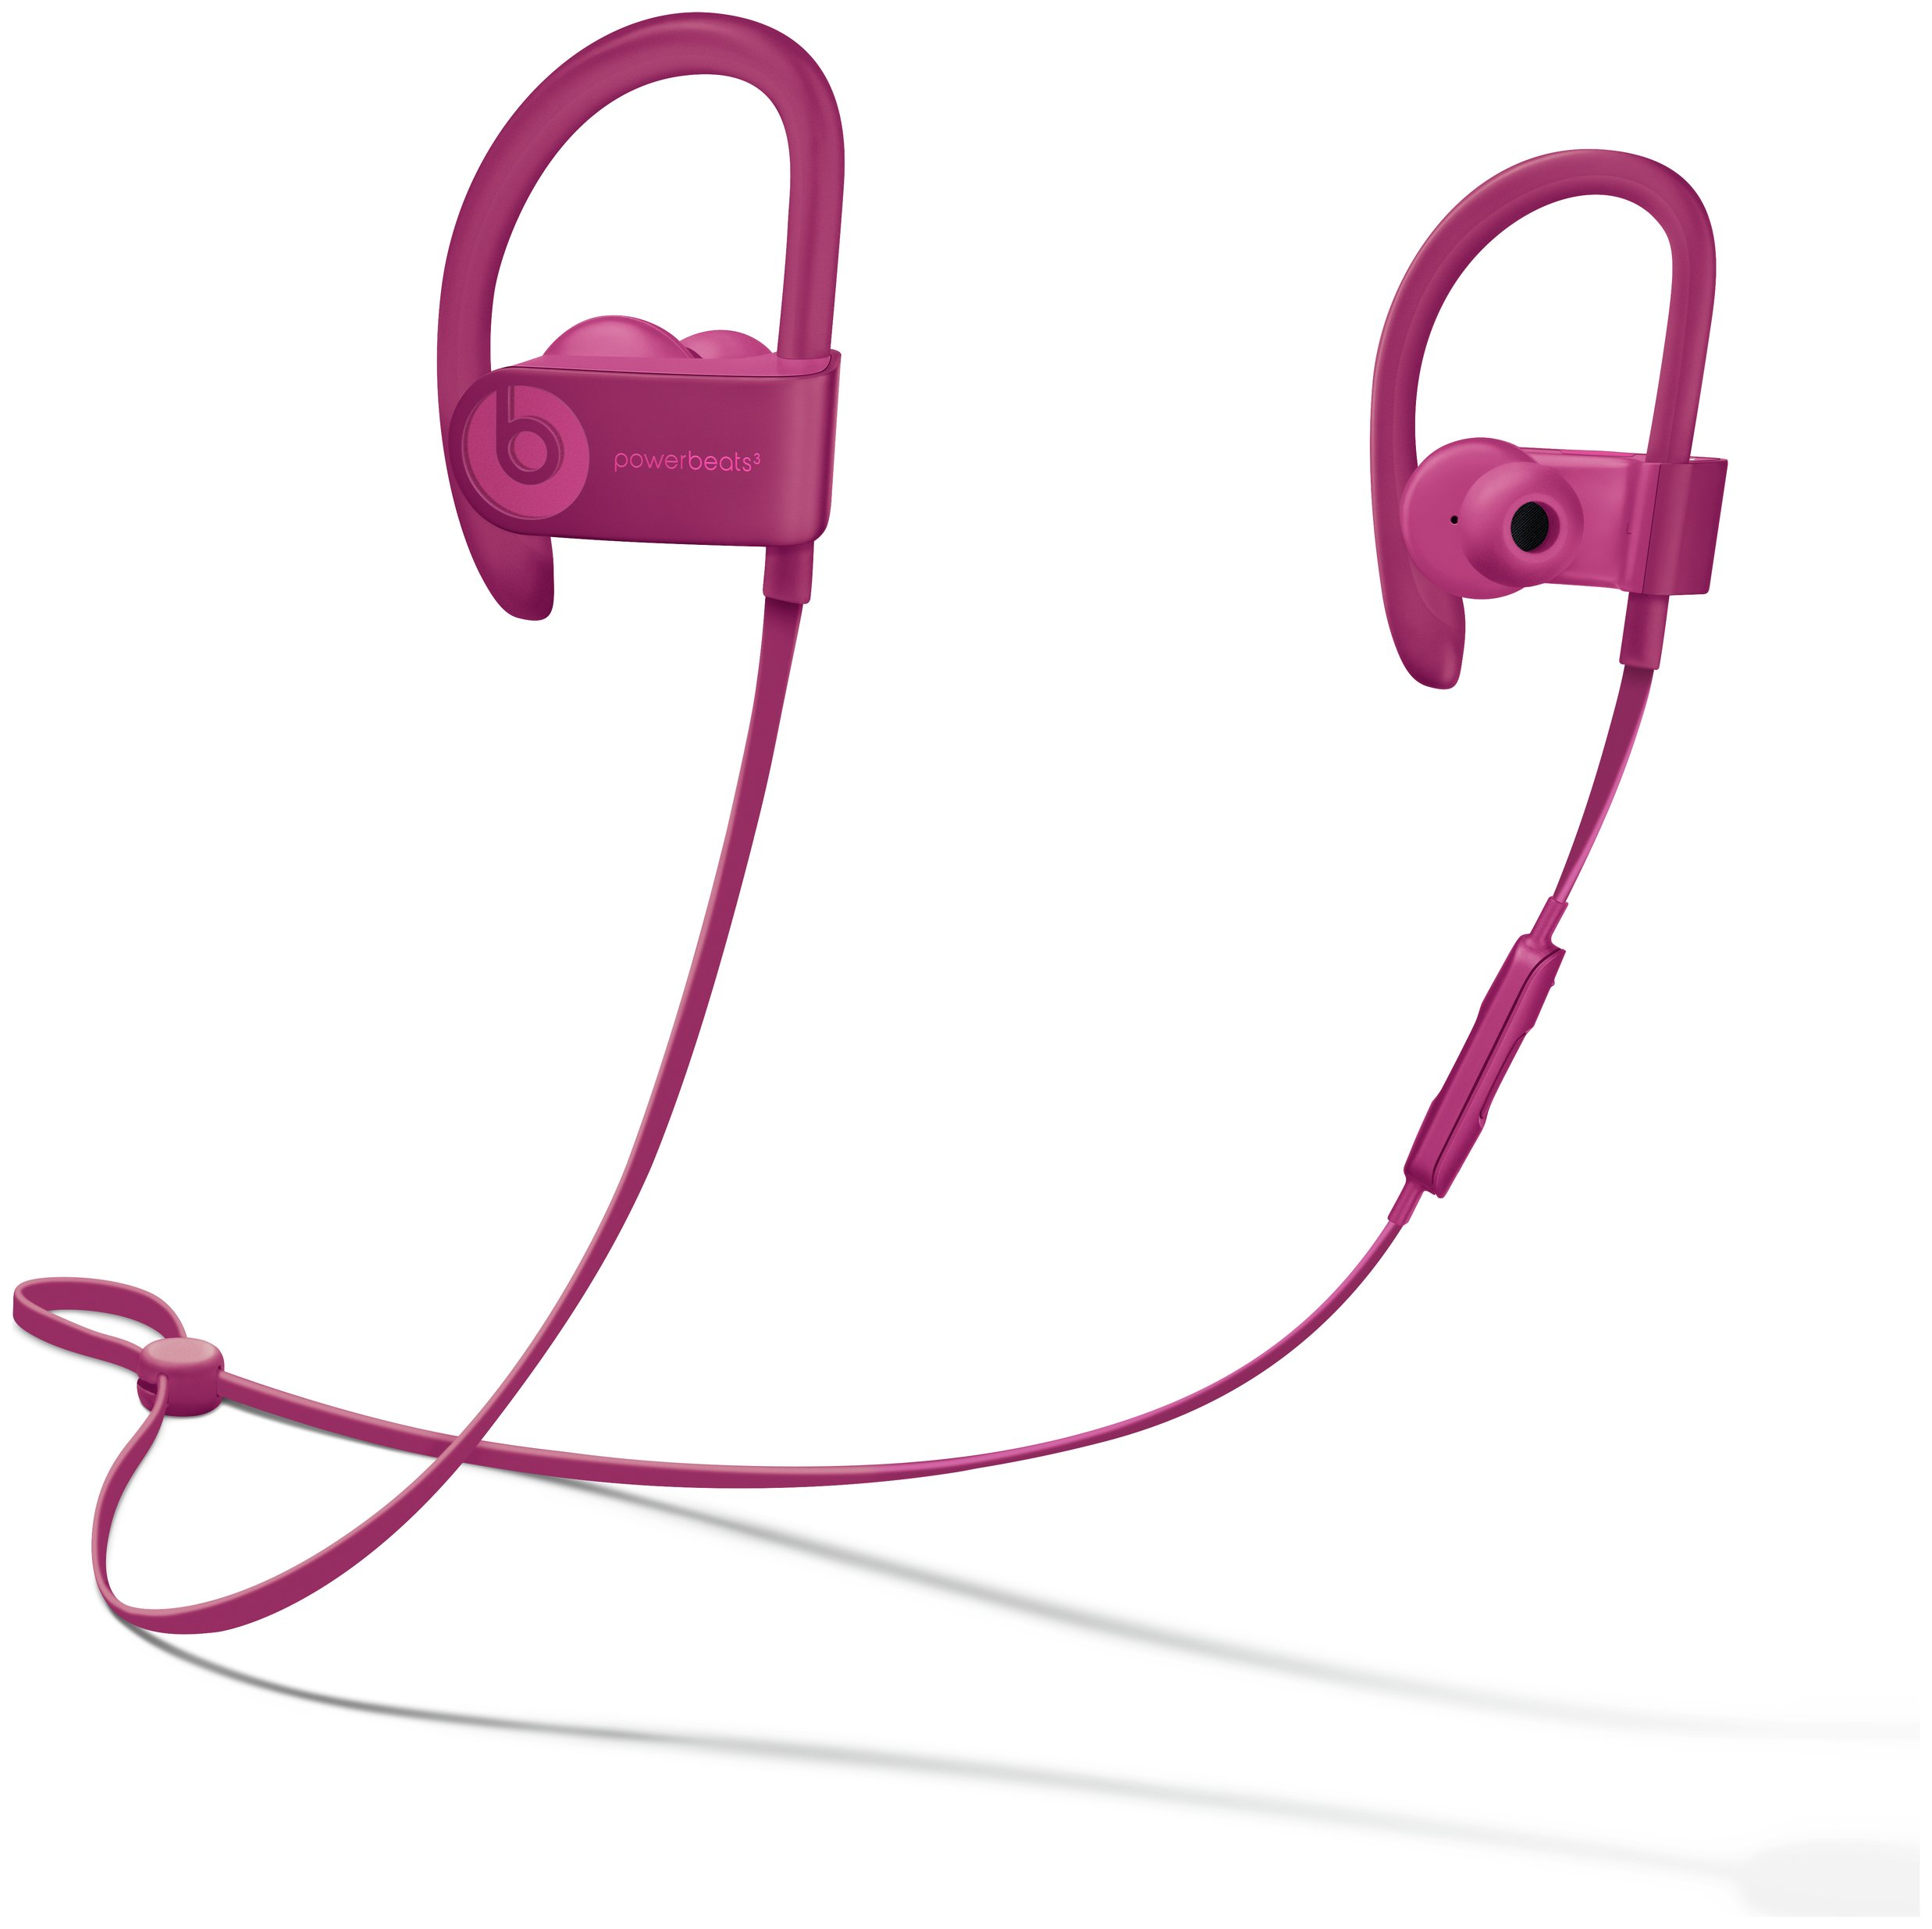 Image of Beats by Dre Powerbeats 3 In - Ear Wireless Headphones - Red